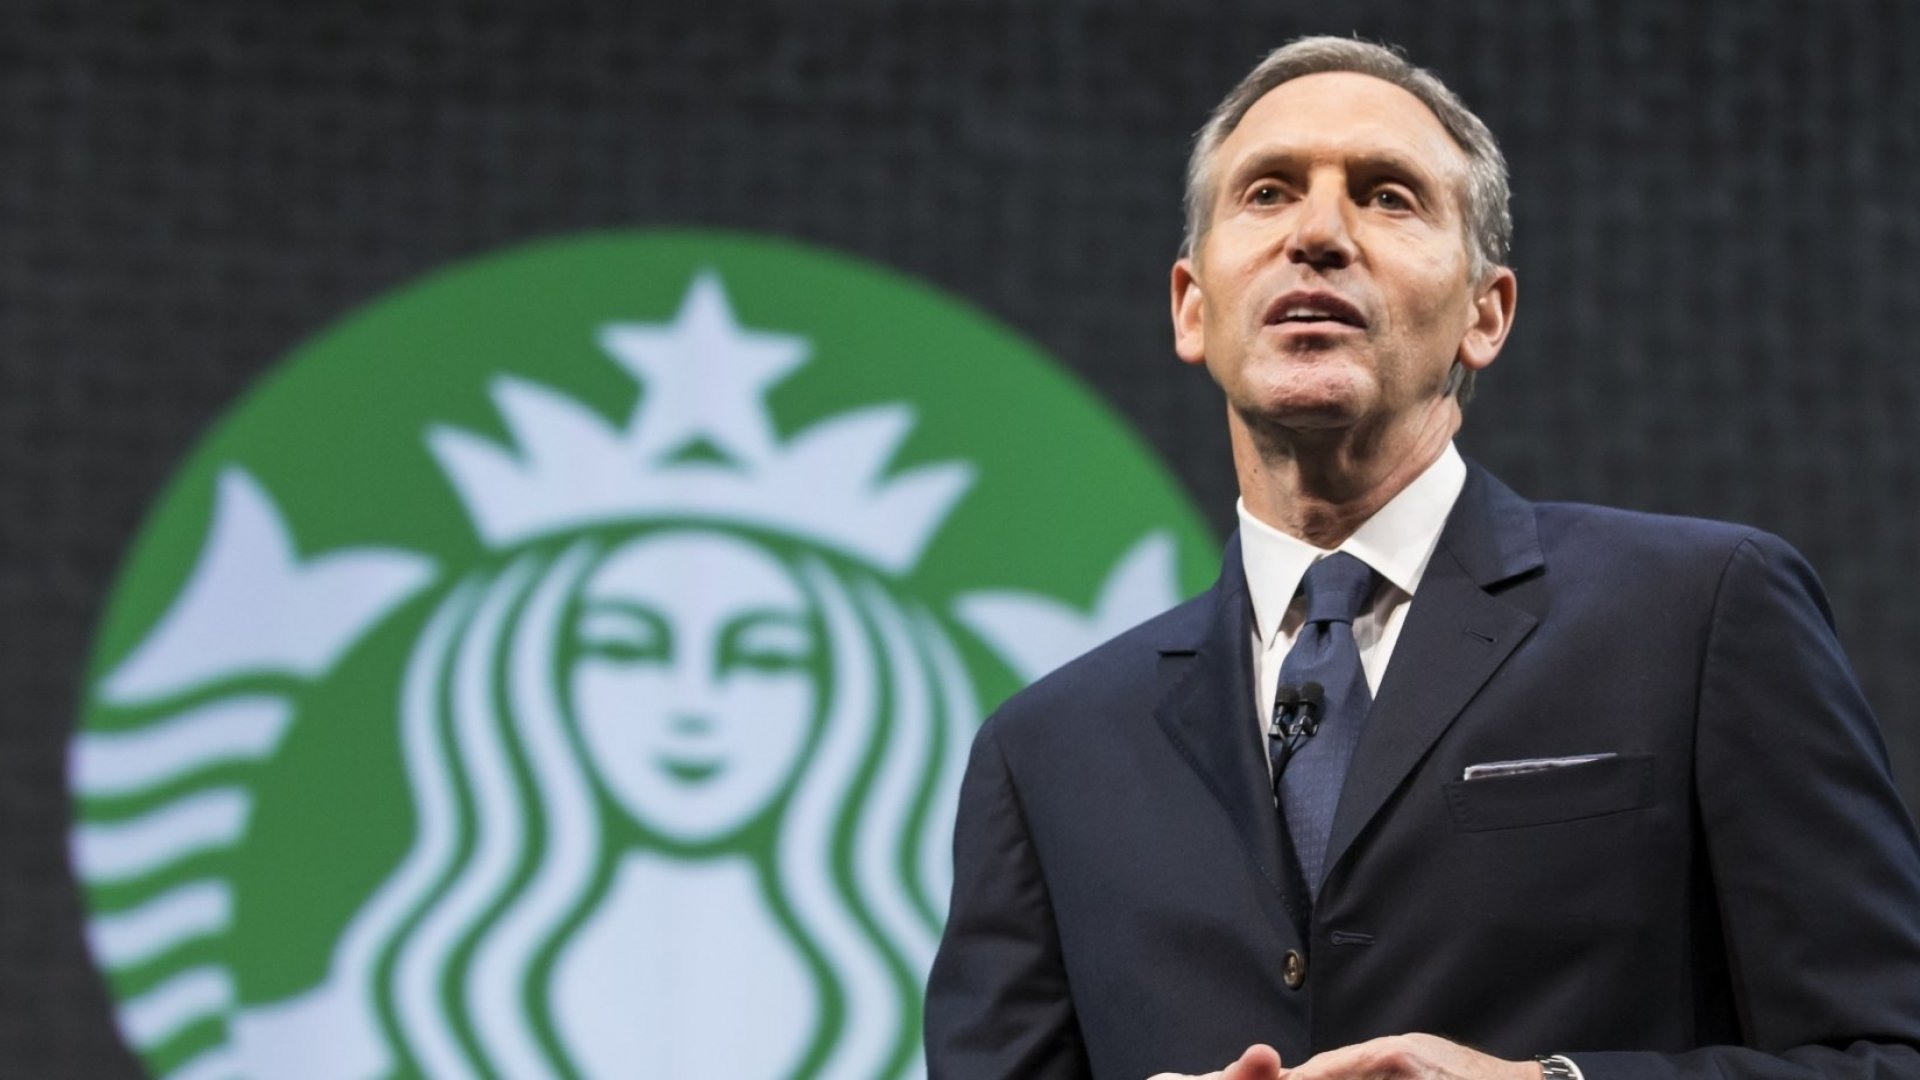 Howard Schultz Says Growing Up Poor in Brooklyn Drove Him to Succeed